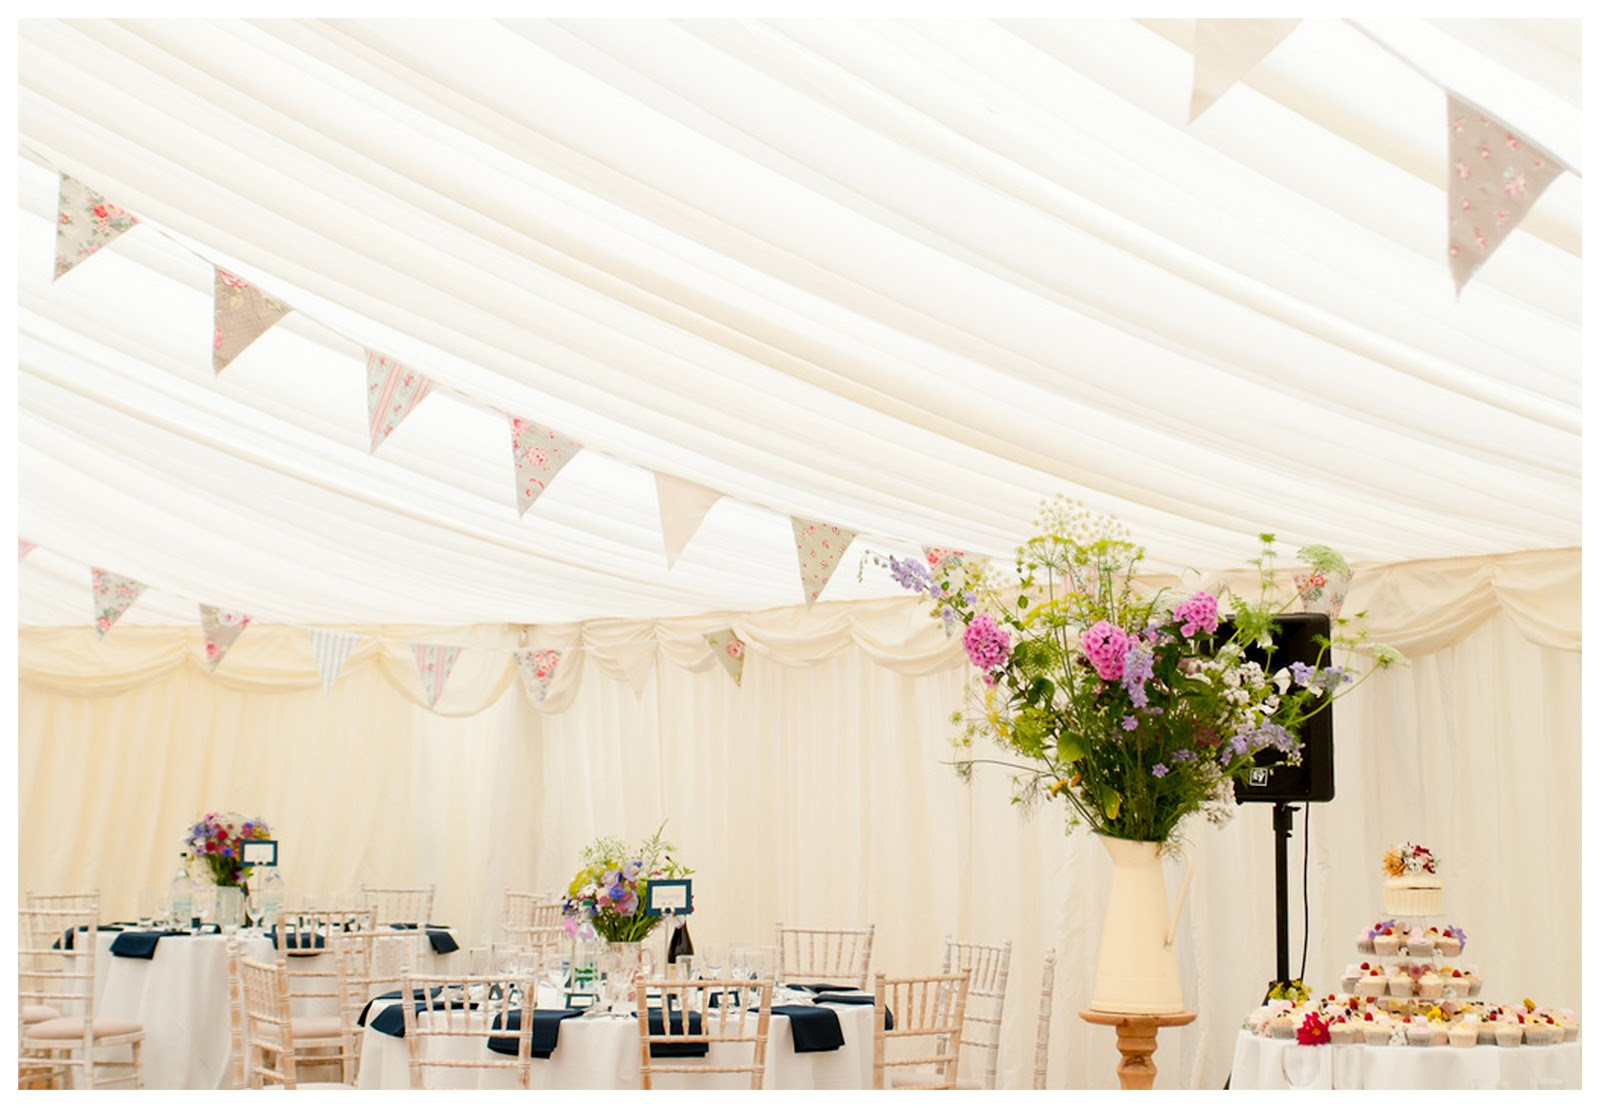 Real Pretty Marquee Wedding: Lottie & Jake - Part 2